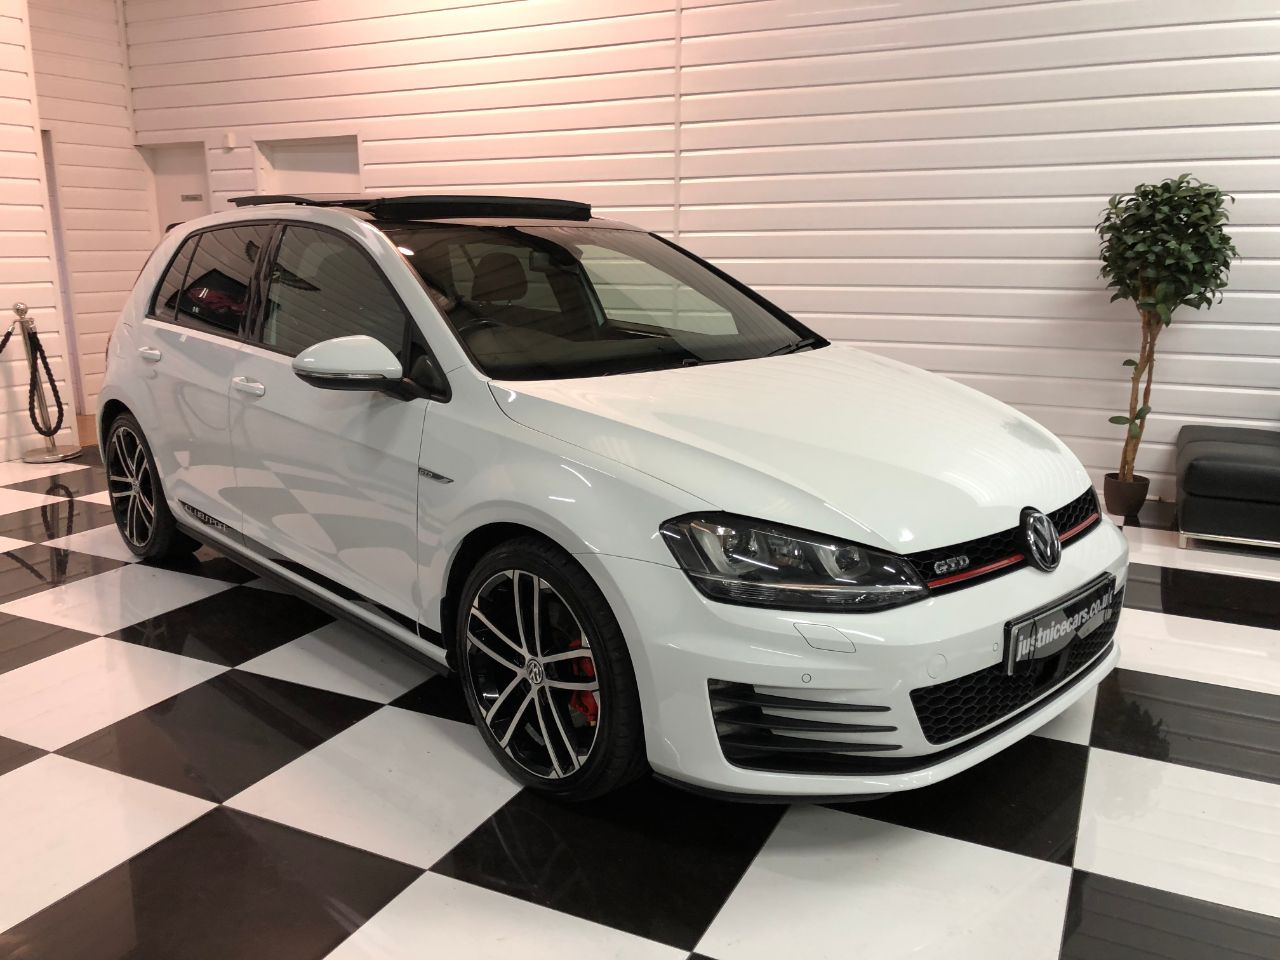 Volkswagen Golf 2.0 TDI GTD 5dr DSG Auto PAN ROOF~HEATED SEATS~SAT NAV~ Hatchback Diesel Candy White